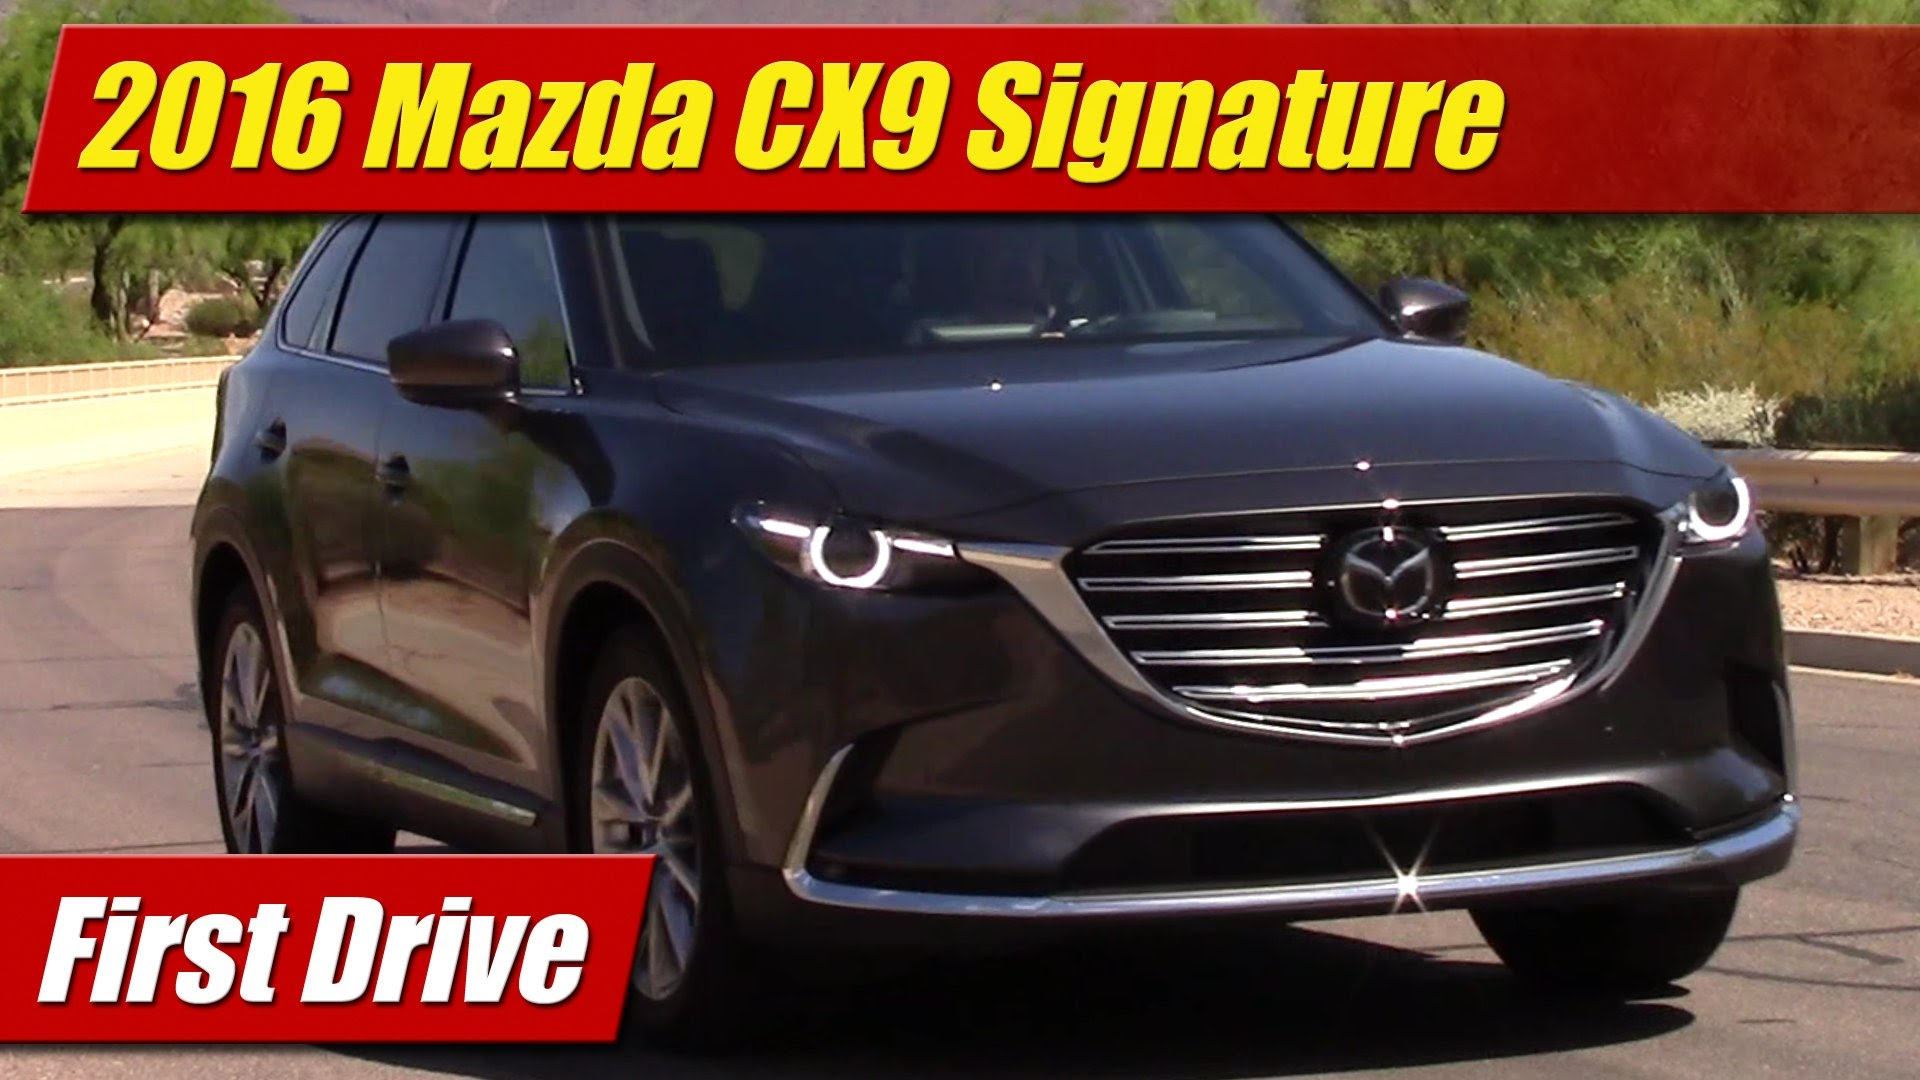 Luxury First Drive 2016 Mazda CX9 Signature  TestDrivenTV